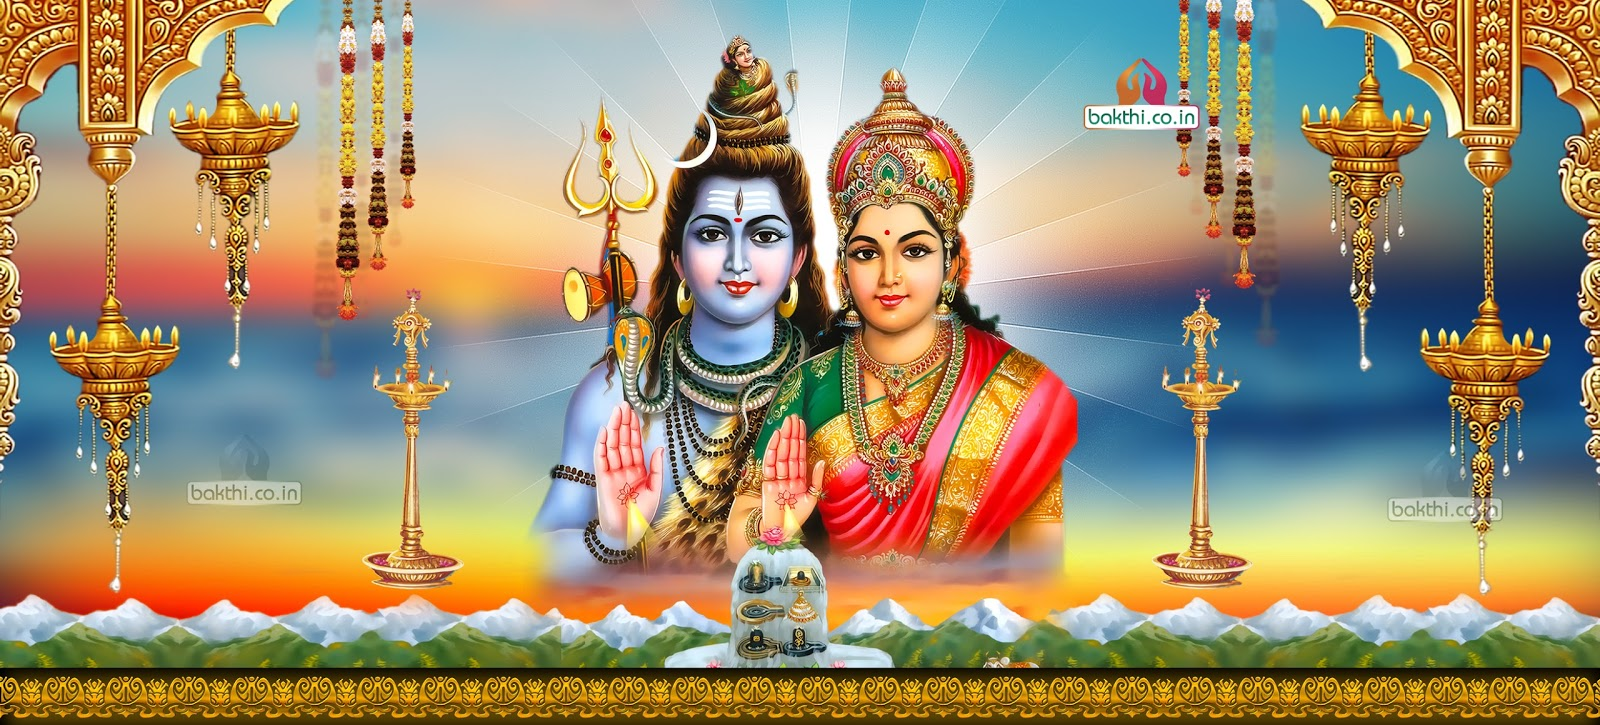 Cool Wallpaper Lord Parvati - lord-shiva-parvathi-hd-photos-wallpapers-images  Picture_611359.jpg